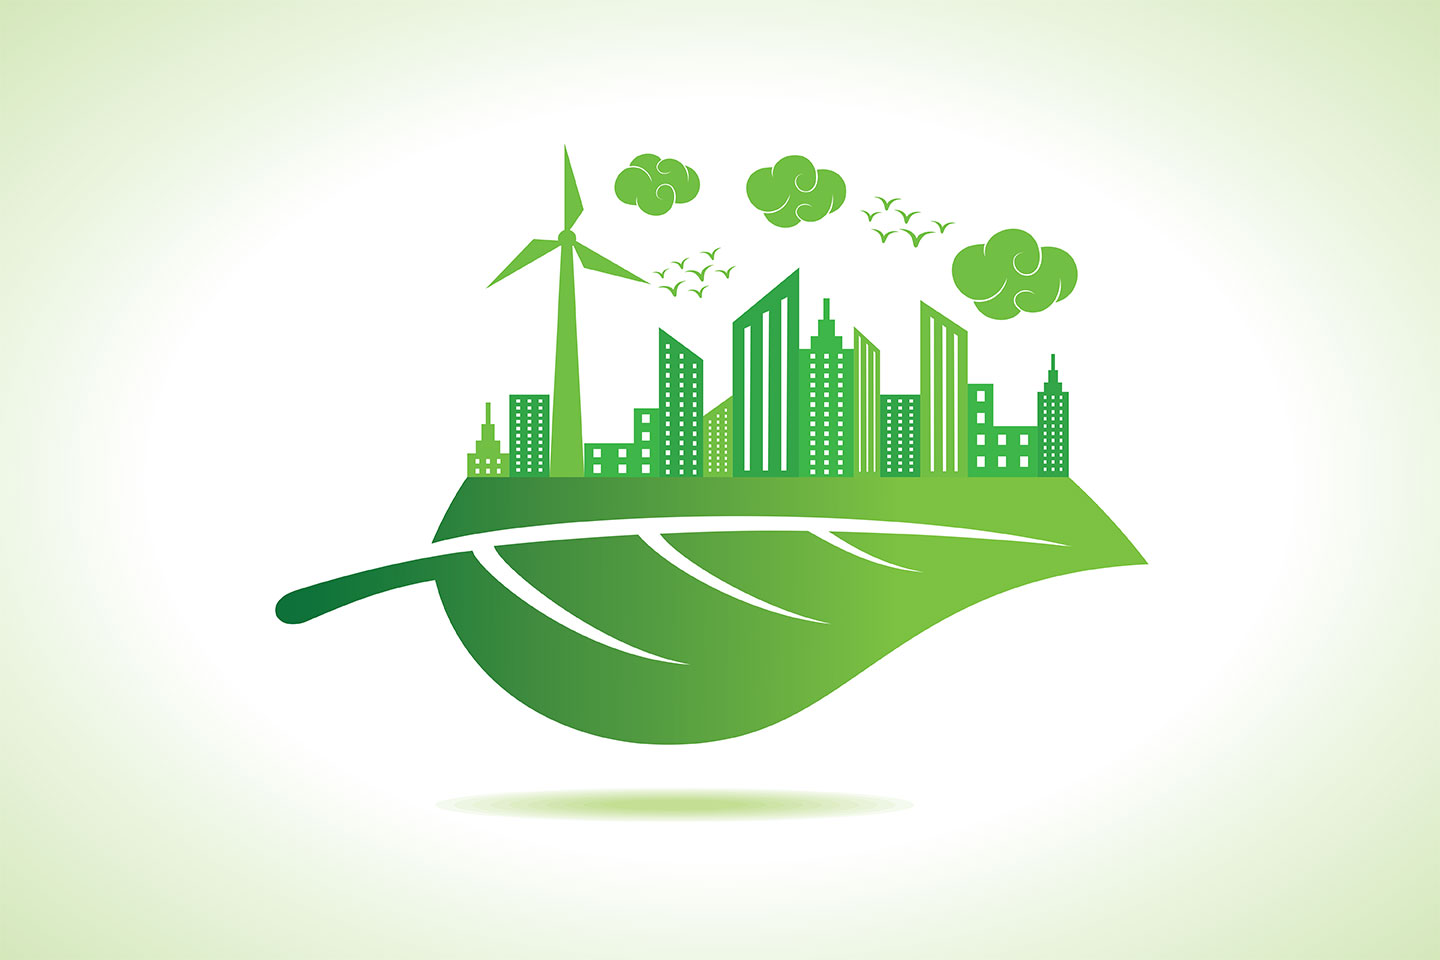 The link between BIM and a sustainable future